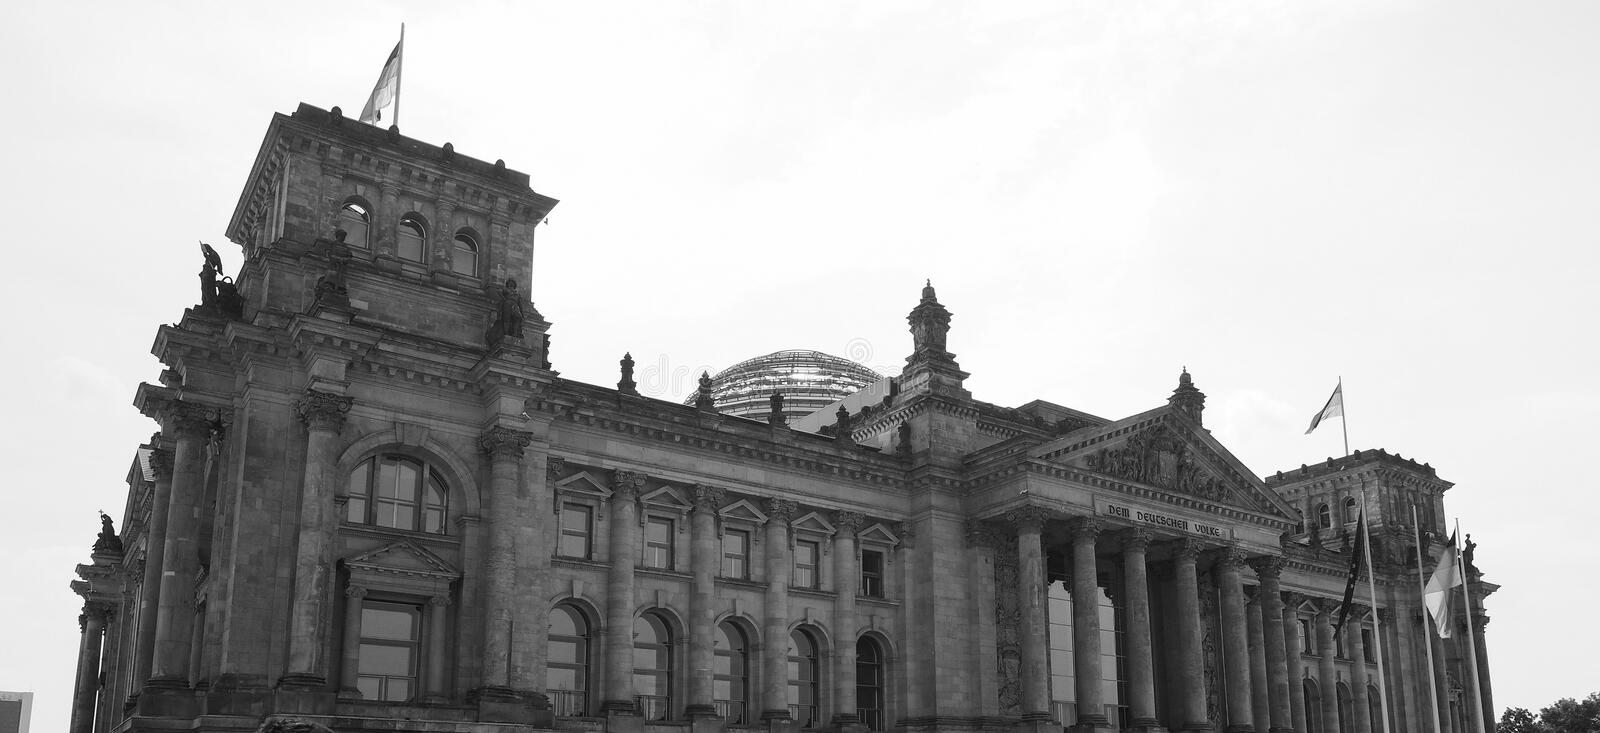 Bundestag parliament in Berlin in black and white. Bundestag German Houses of Parliament in Berlin, Germany. Dem deutschen Volke means To the German people in stock photo